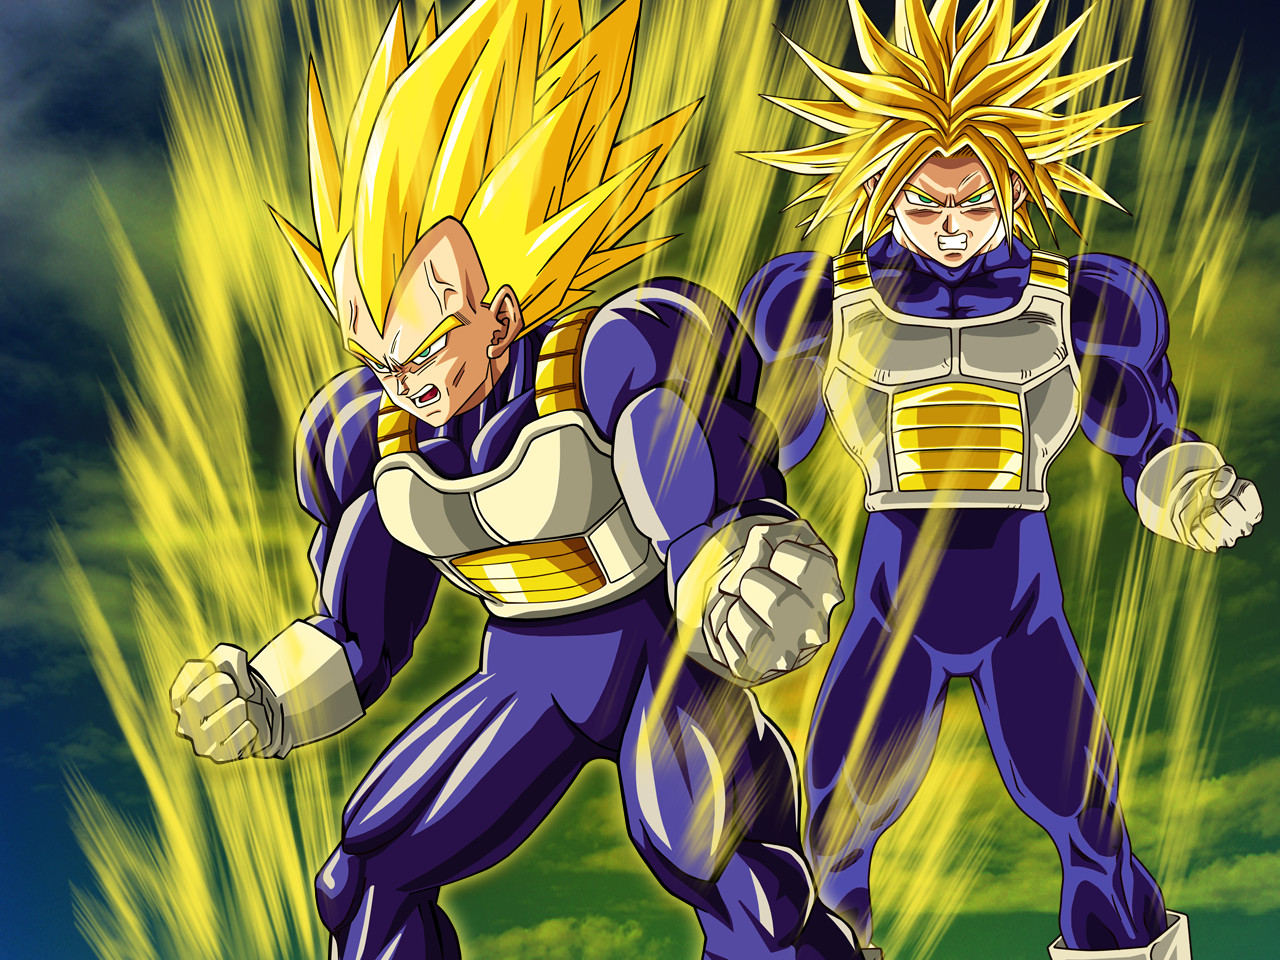 Wallpaper Vegeta And Trunks By Dony910 On Deviantart